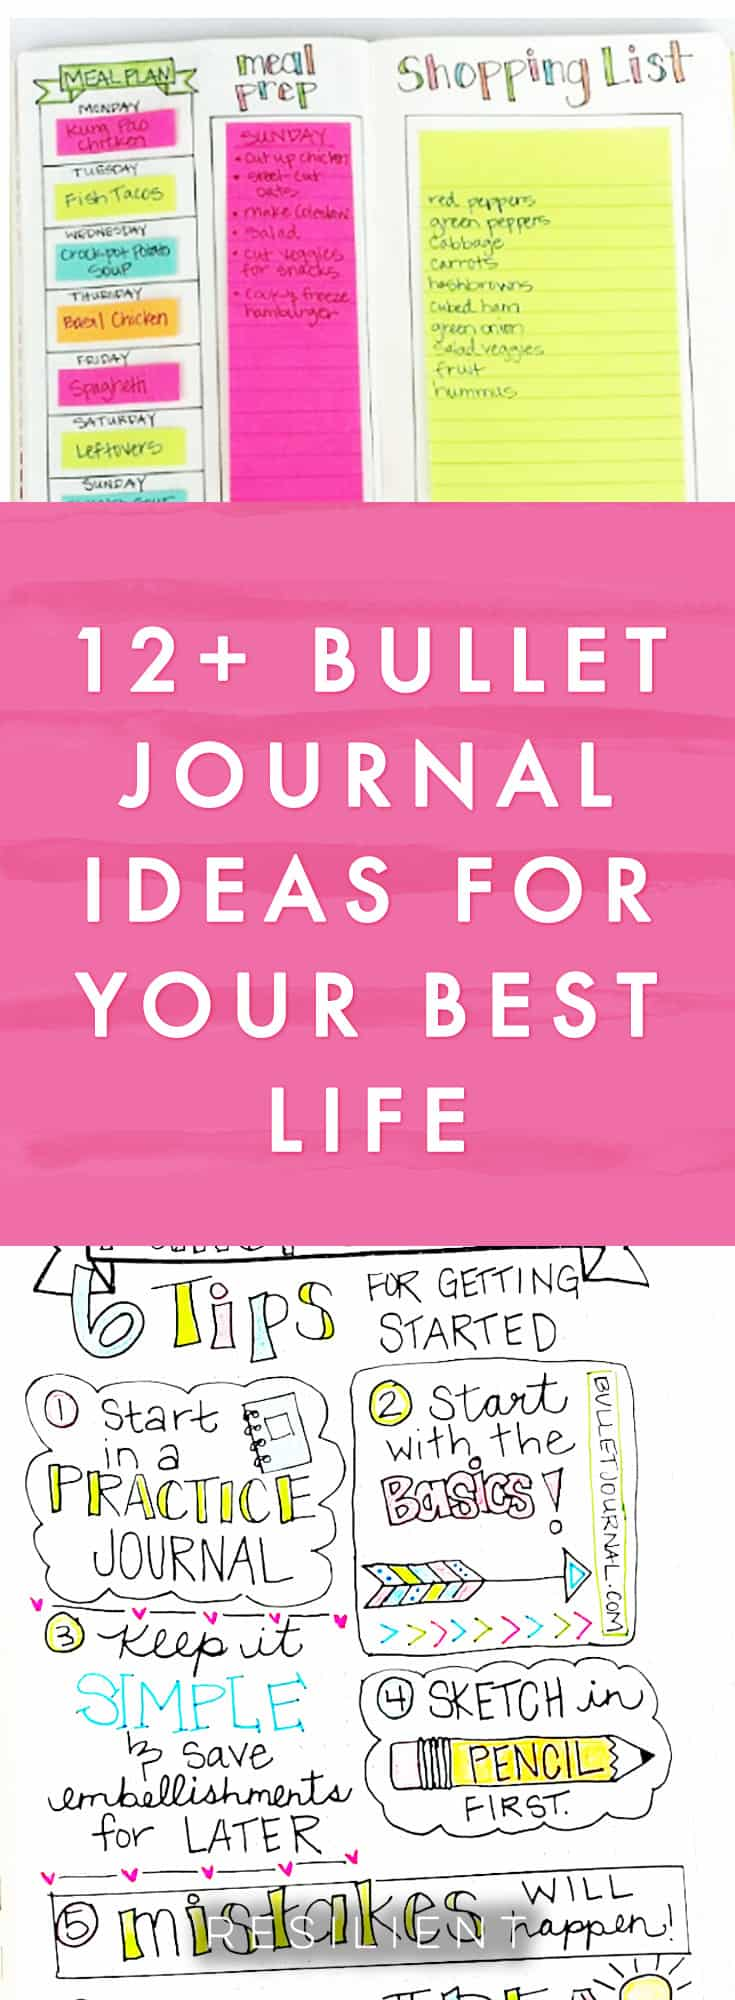 Have you heard of bullet journaling? It's a visual and creative approach to journaling that helps you keep track of things in your life and plan out your days and weeks visually on paper. It's like using a planner but you get to create your own pages however you want! Here are 12 bullet journal ideas for improving your life.